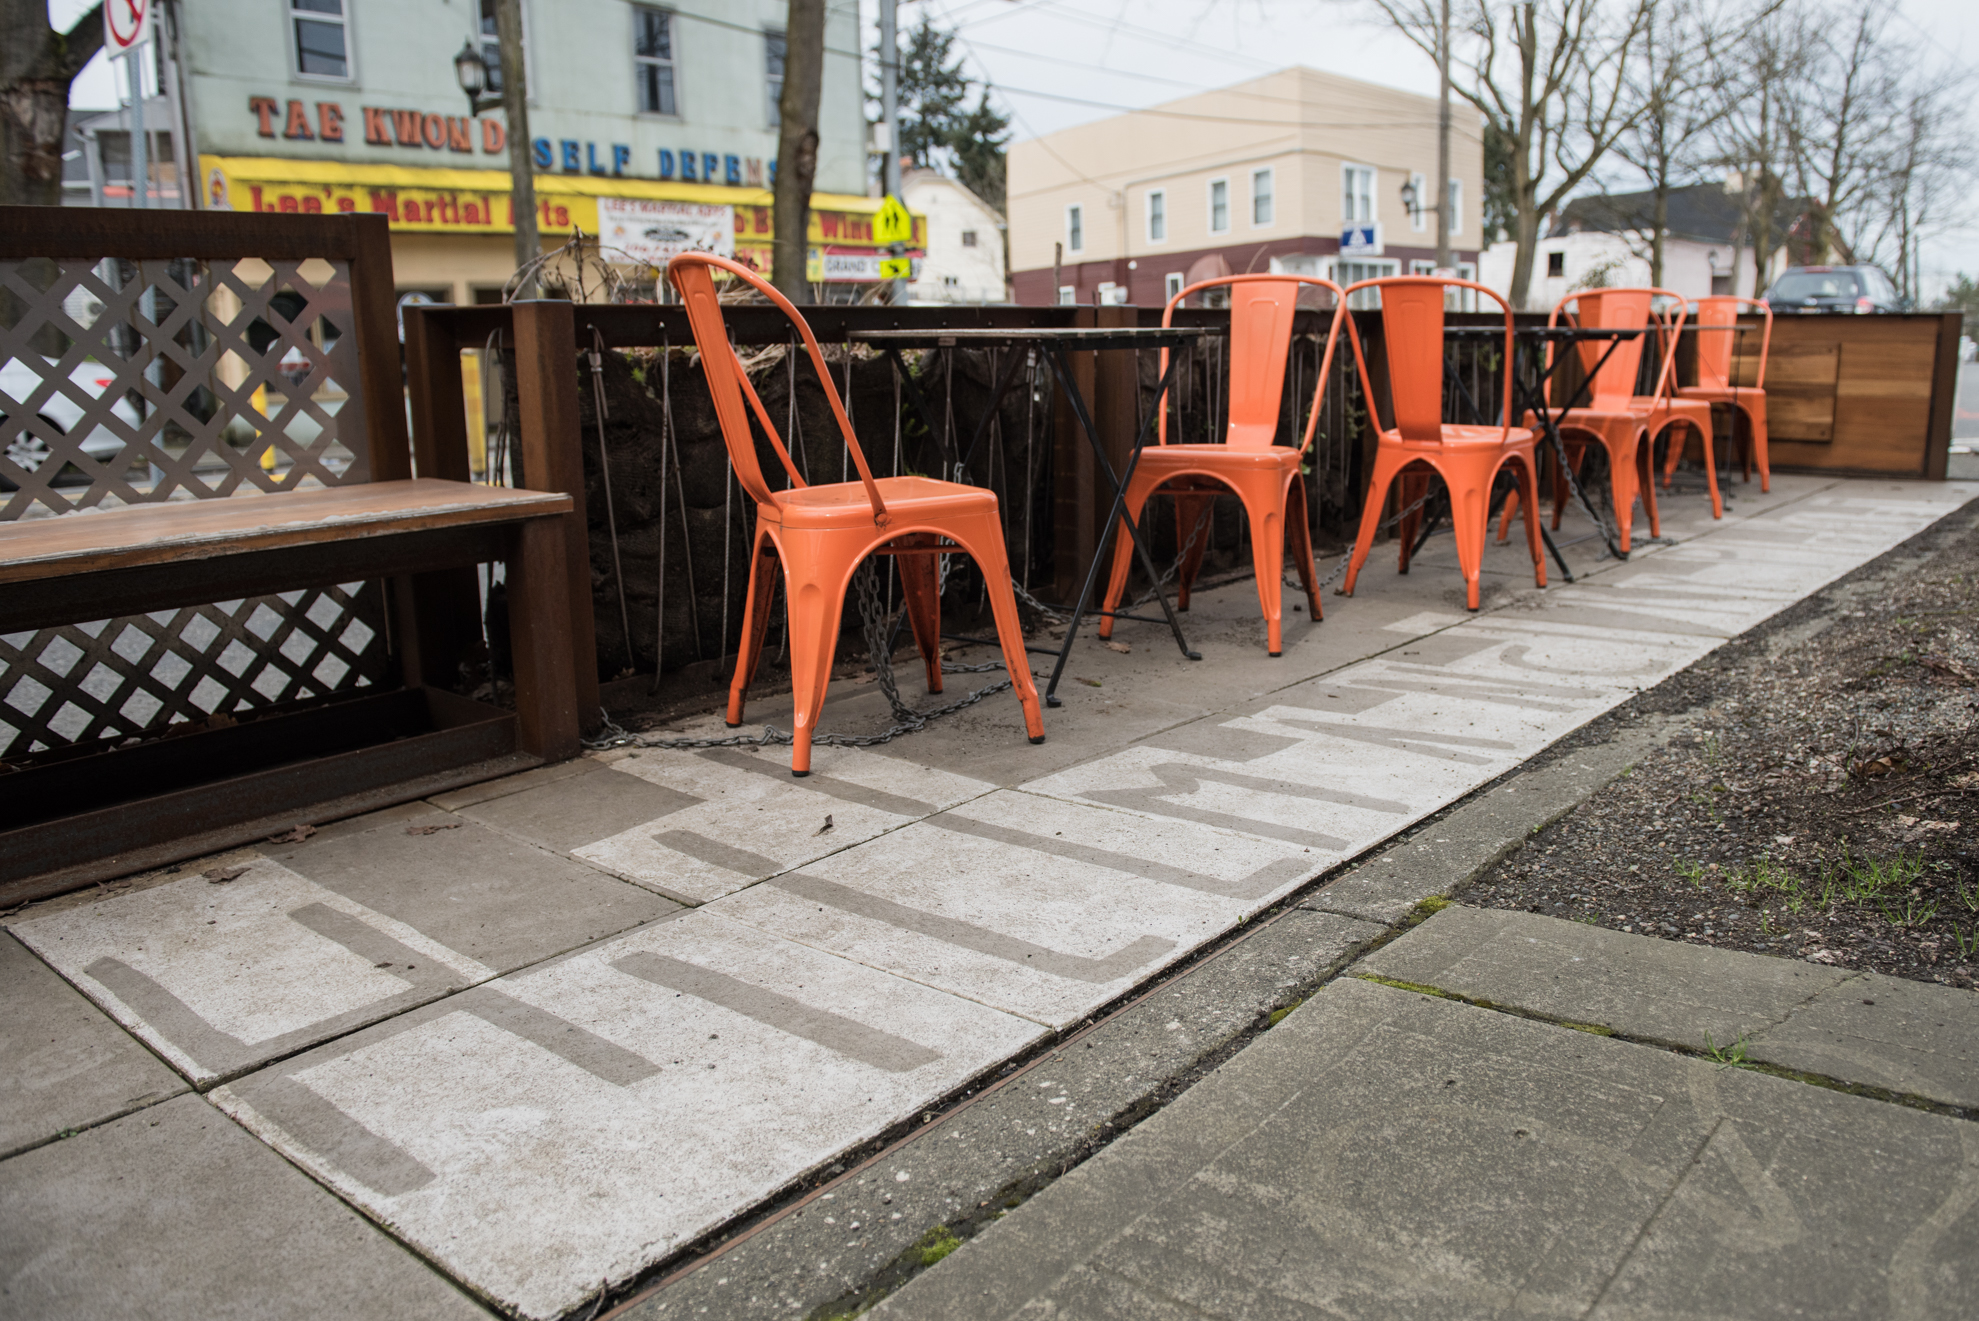 Hillman City Parklet: Outside Tin Umbrella Coffee Roasters in Hillman City bright orange chairs give a pop of color at this parklet. (Image: Natalia Dotto)